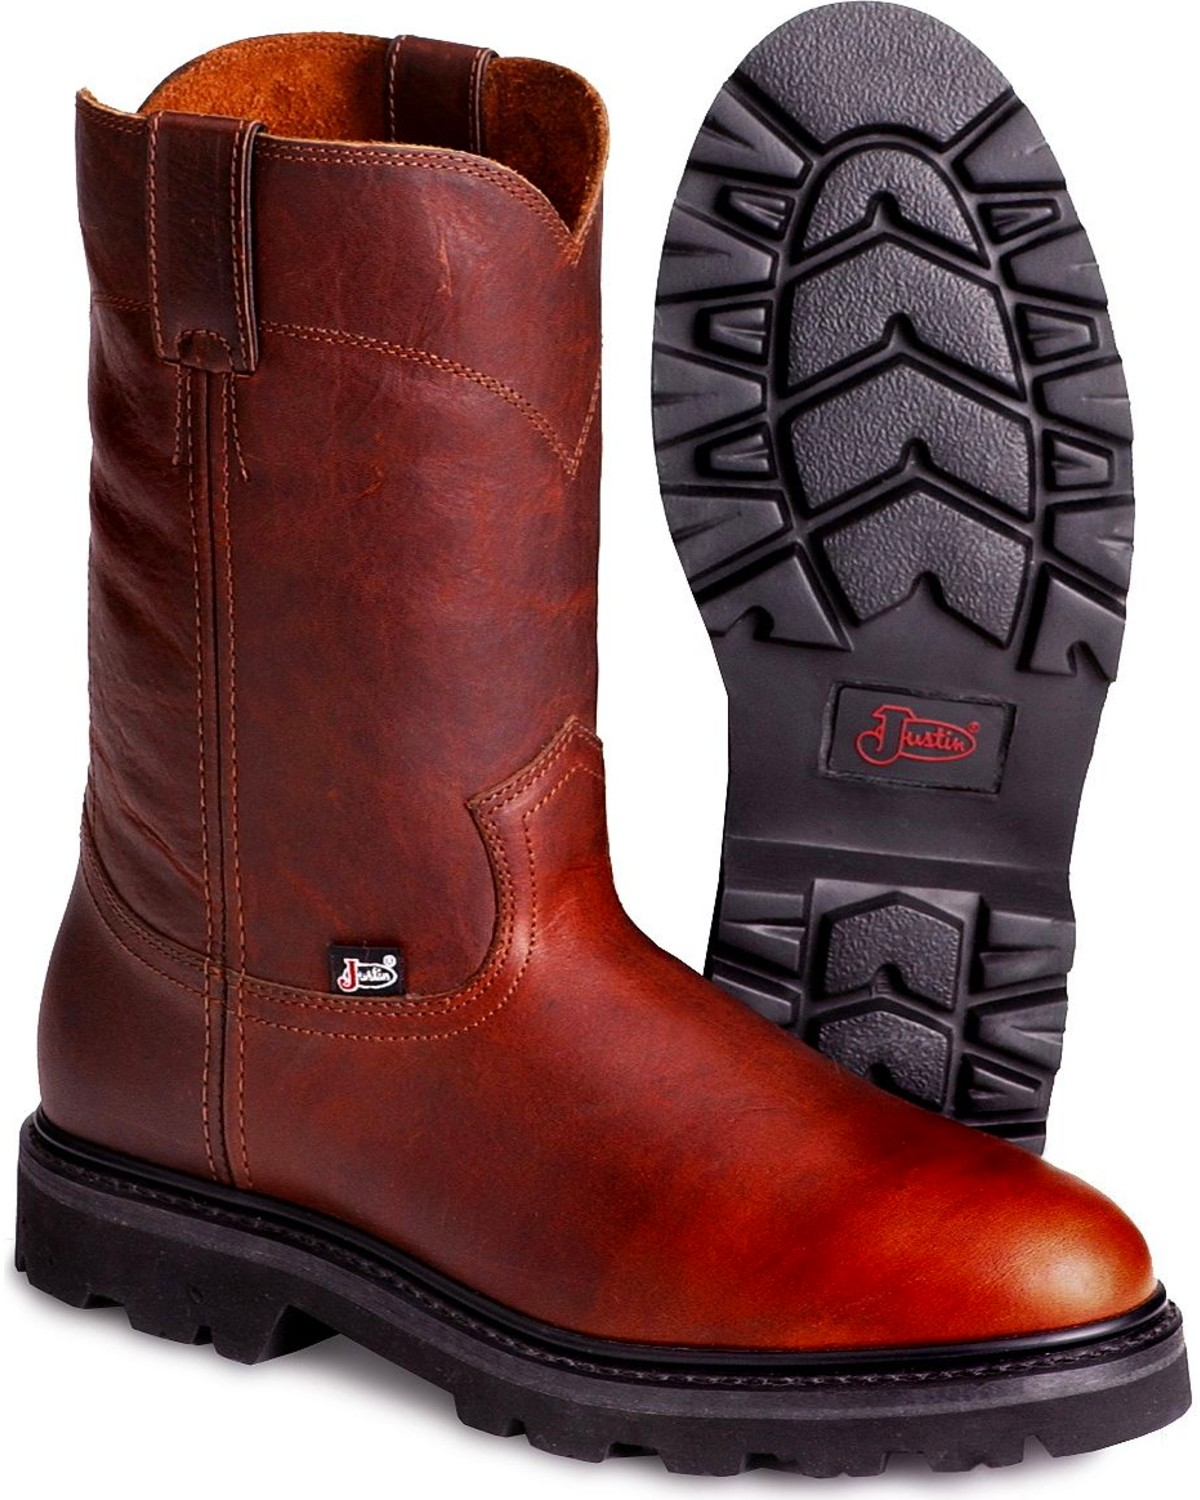 Through his experience as a boot repairman, founder H.J. Justin knew what went into Mobile-friendly· Day Returns· Low Price Guarantee· Exclusive DiscountsBrands: Justin Original Work Boots, Carhartt, Cat, Dr. Marten's, Georgia and more.